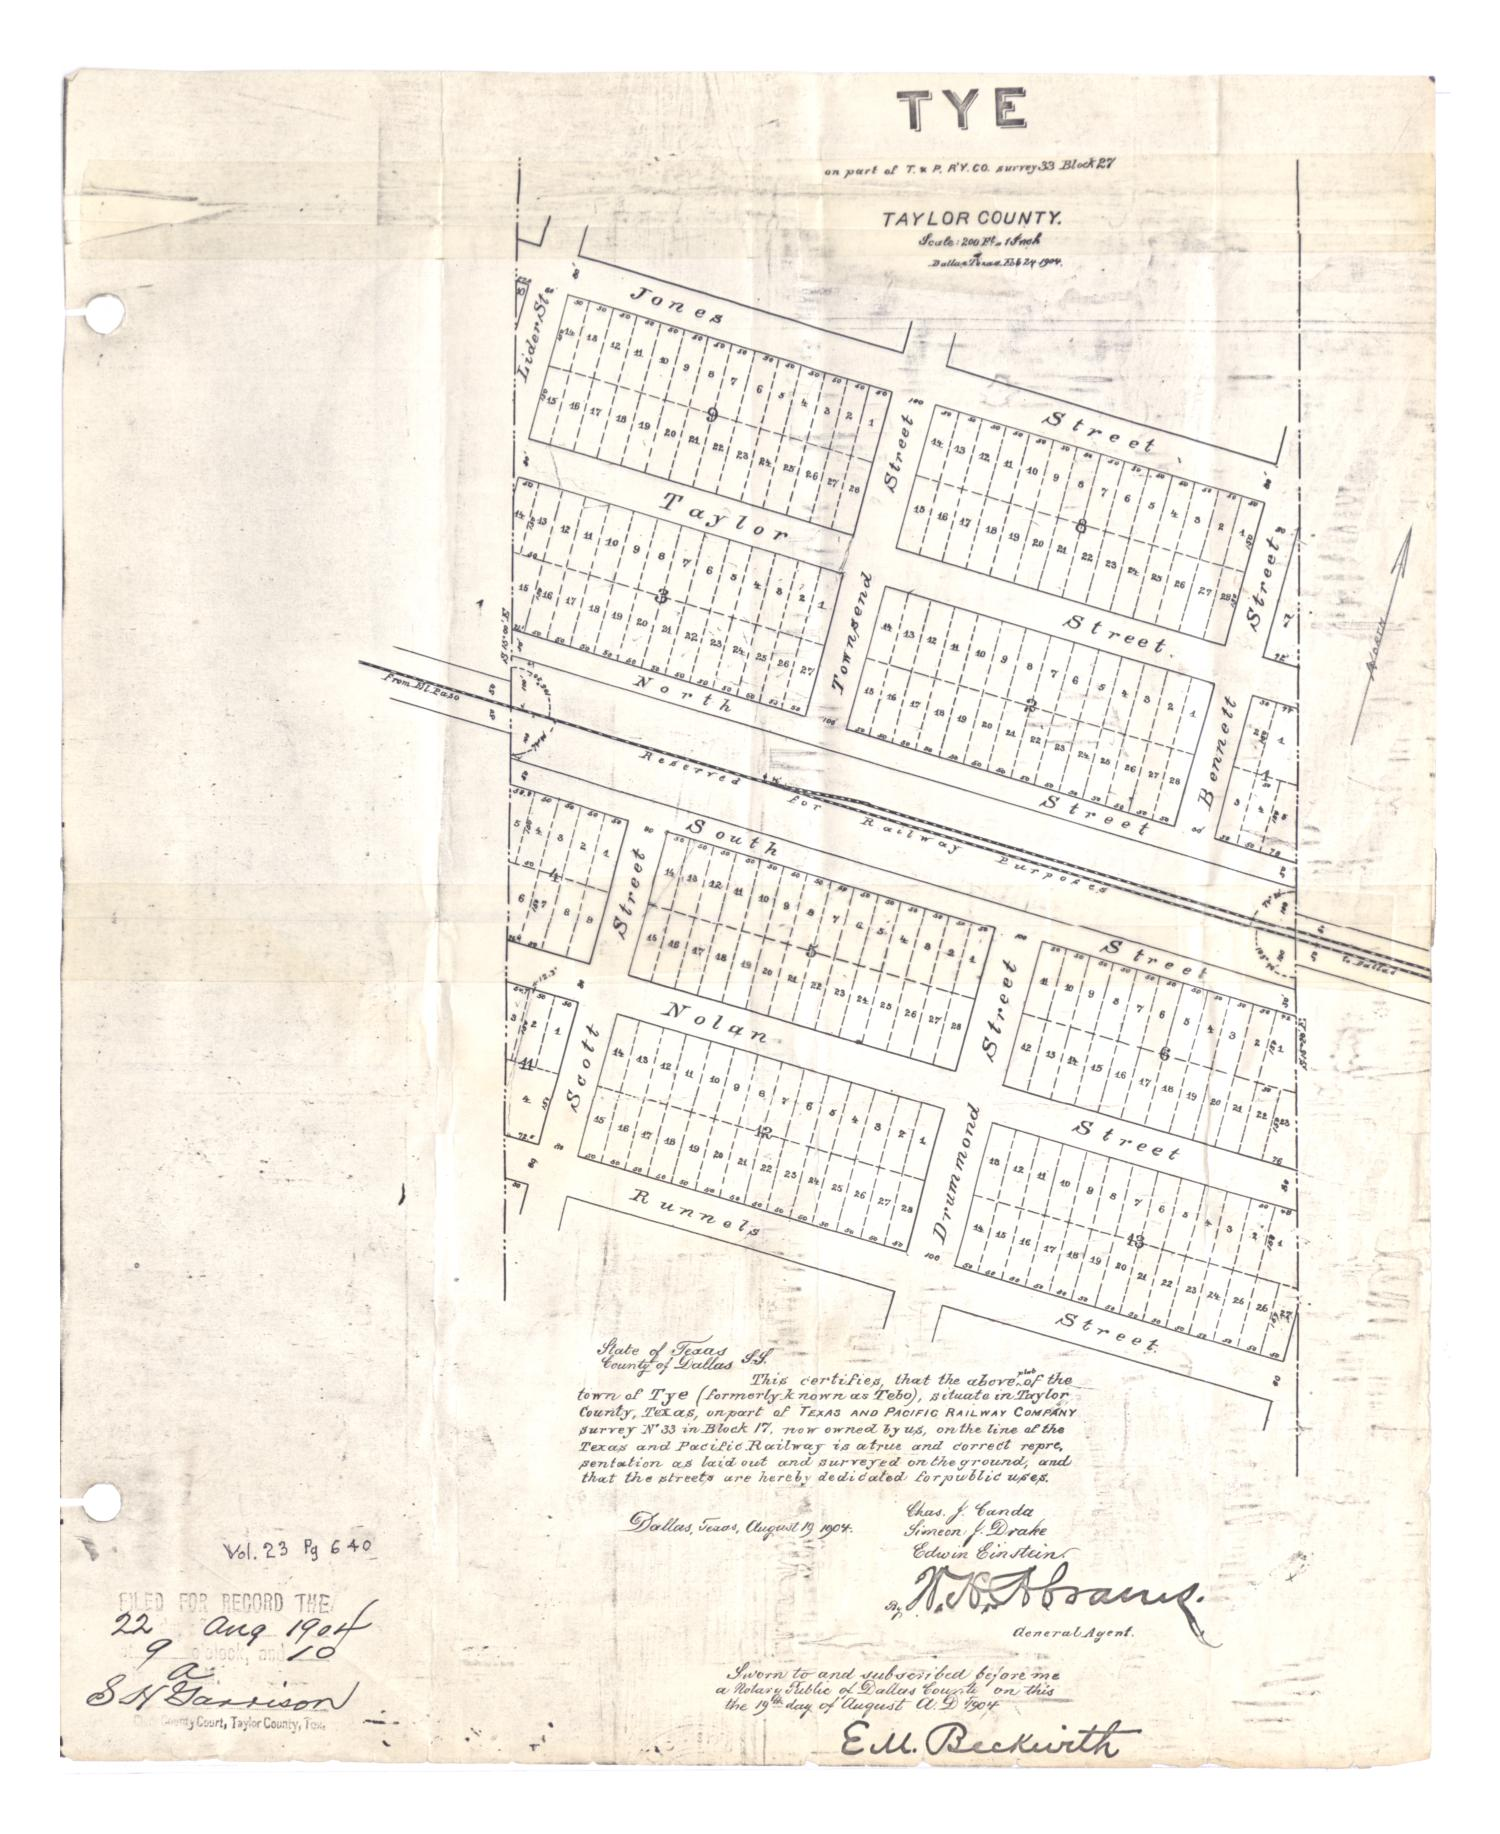 Tye: on part of Texas and Pacific Railway Company survey 33, Block 27                                                                                                      [Sequence #]: 1 of 2